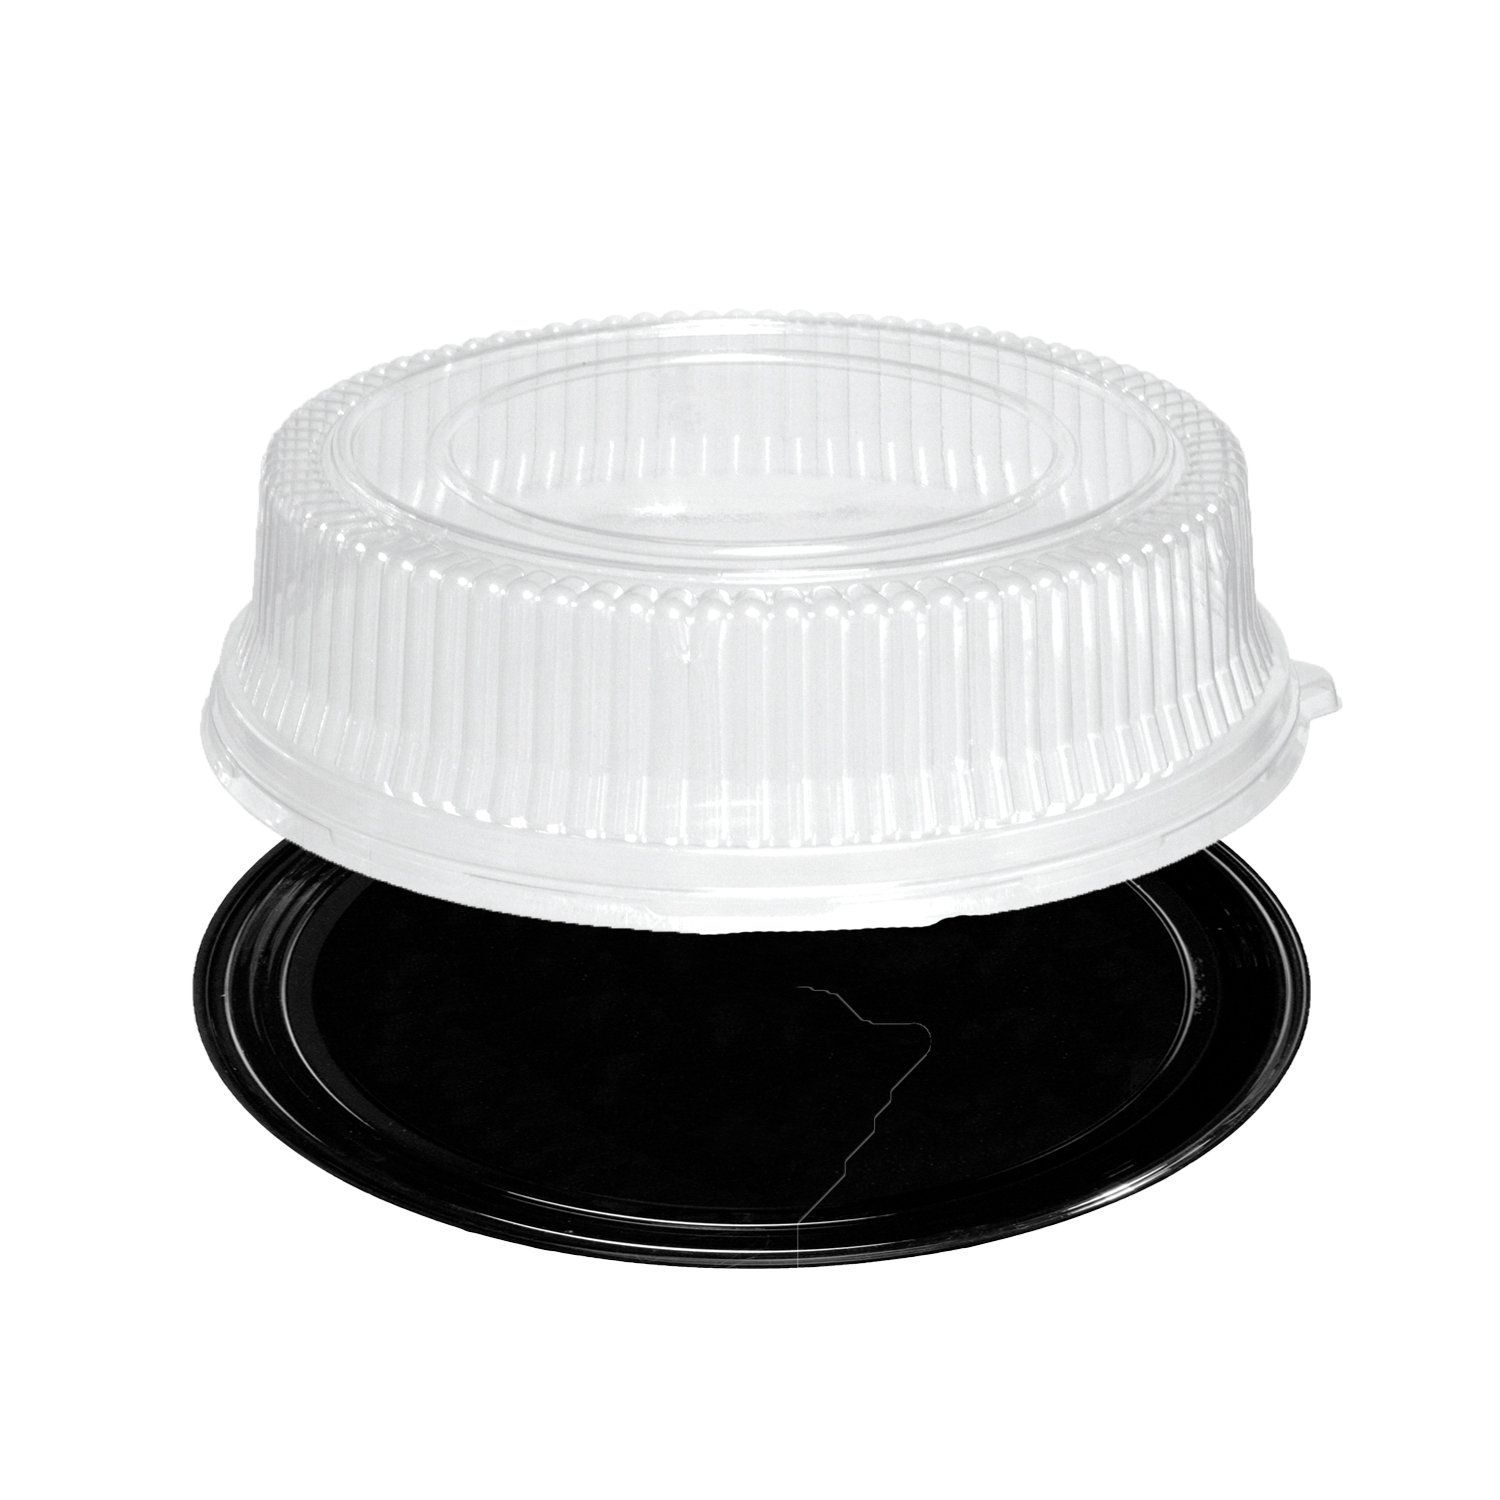 Party Essentials N716417 Soft Plastic 16-Inch Round Flat Serving/Catering Trays, Black with Clear Dome Lids, Set of 2